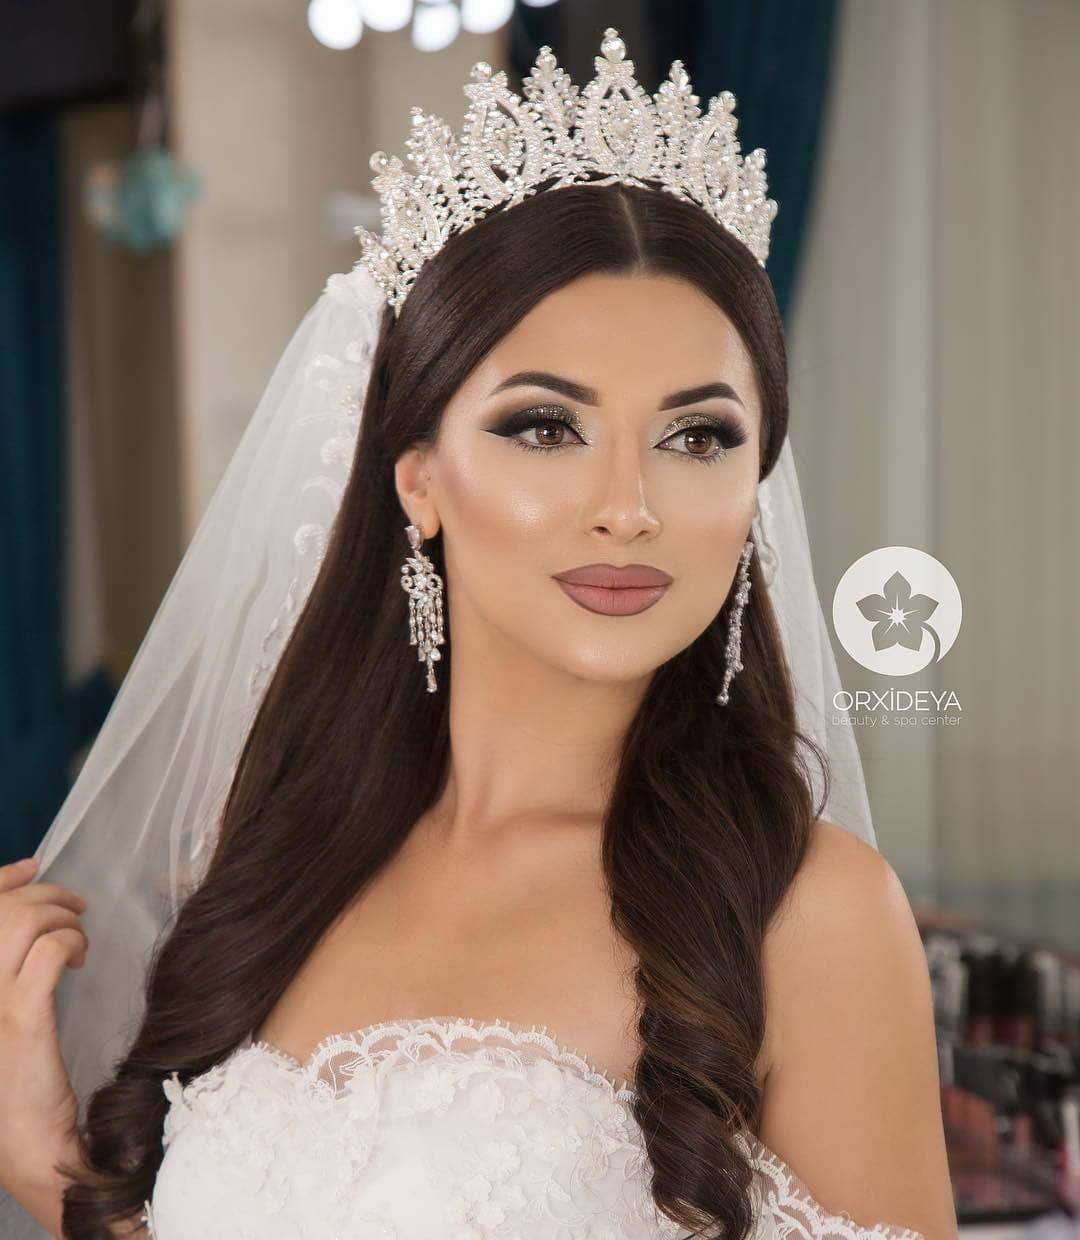 Beautiful Makeup Look For Wedding Verbena In 2020 Wedding Hairstyles With Crown Bridal Makeup Wedding Bride Hairstyles